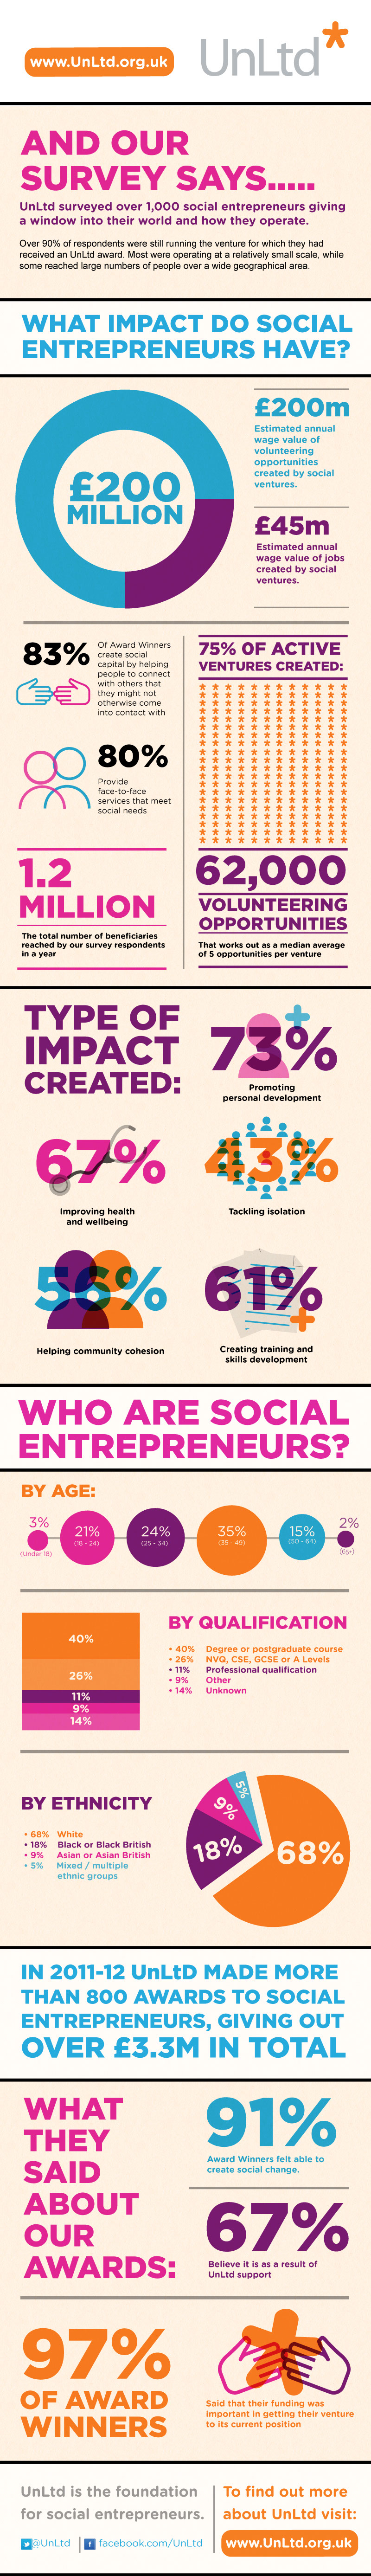 The-Impact-Of-Social-Entrepreneurs-infographic